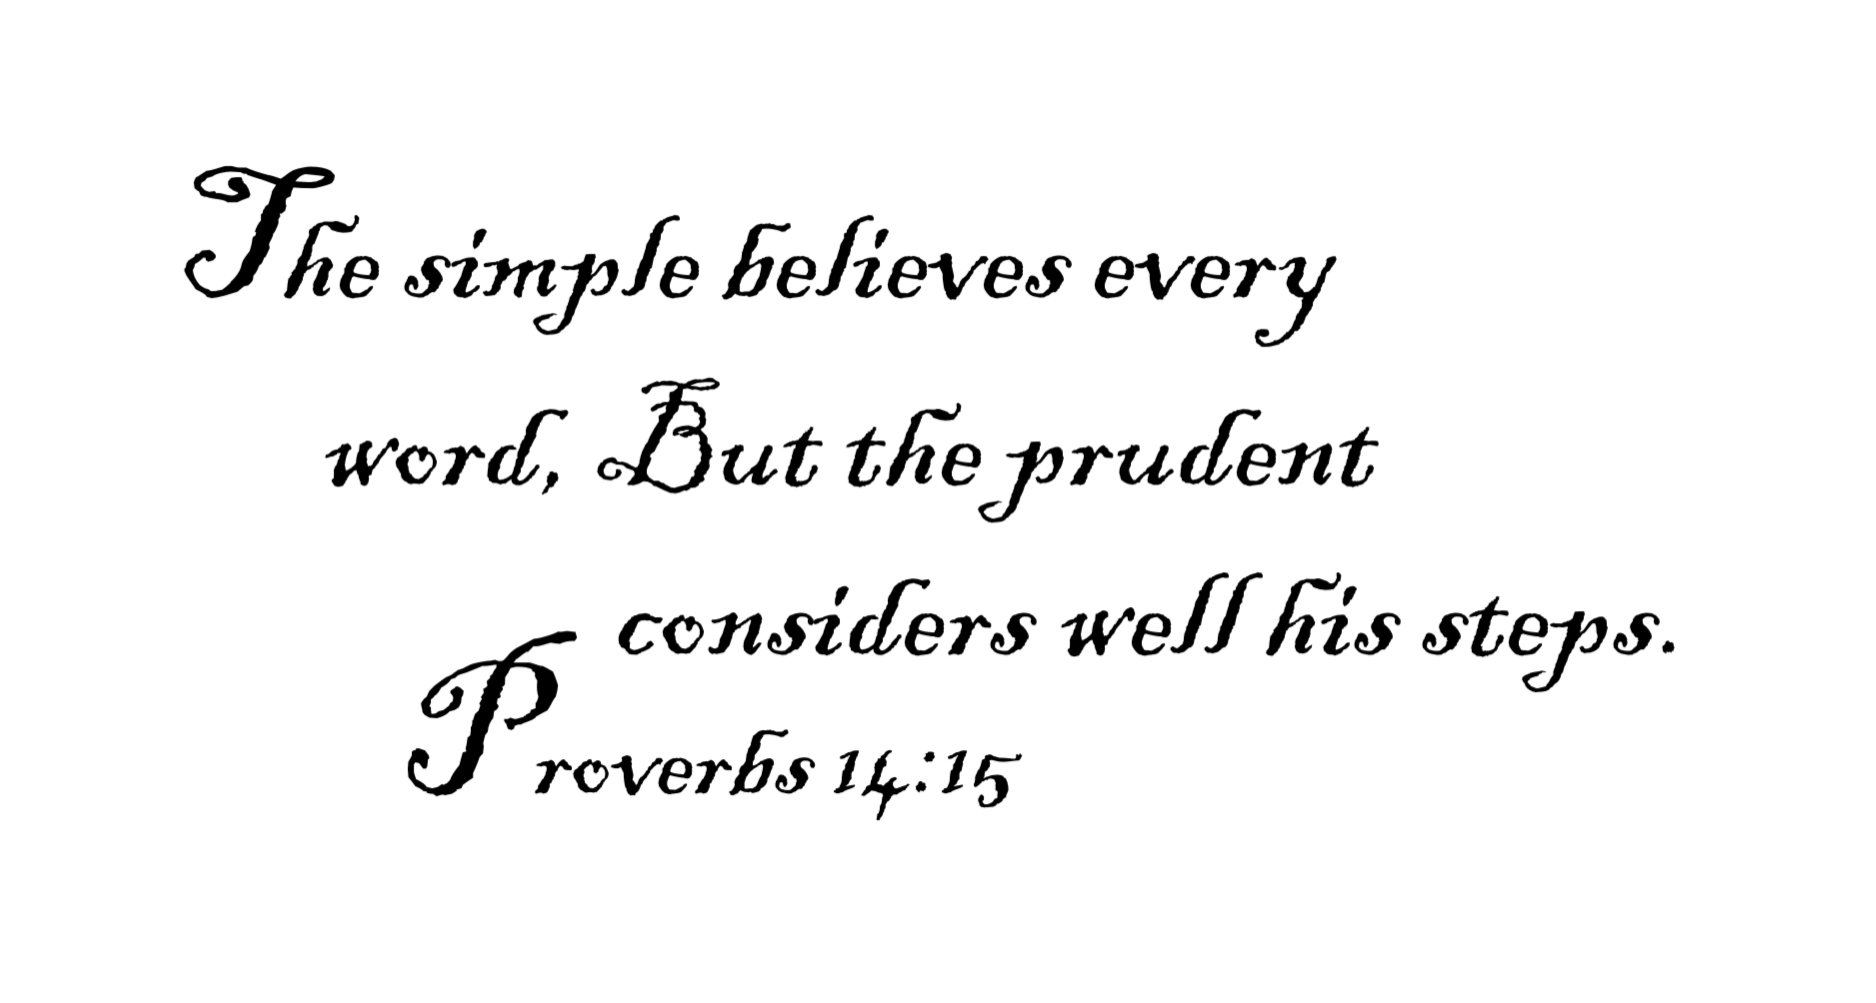 BE PRUDENT